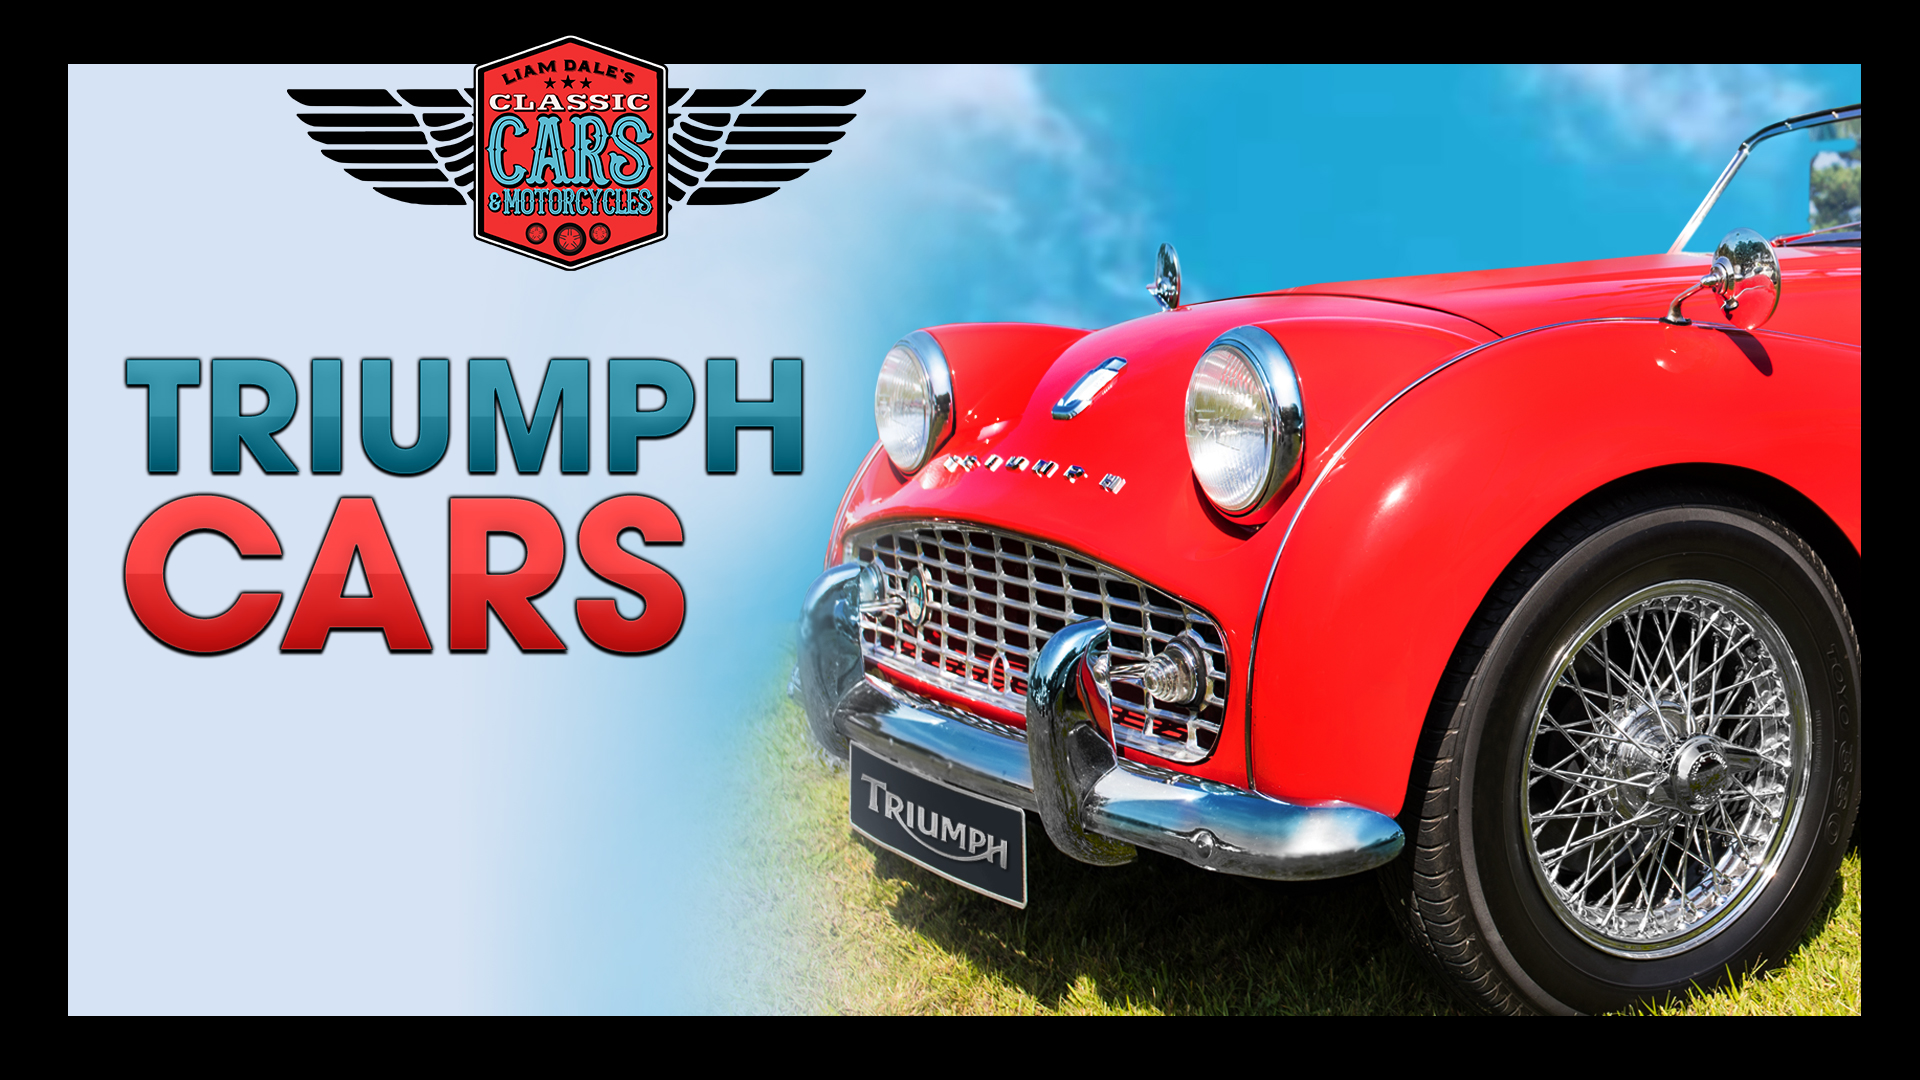 Triumph Cars: Liam Dale's Classic Cars & Motorcycles